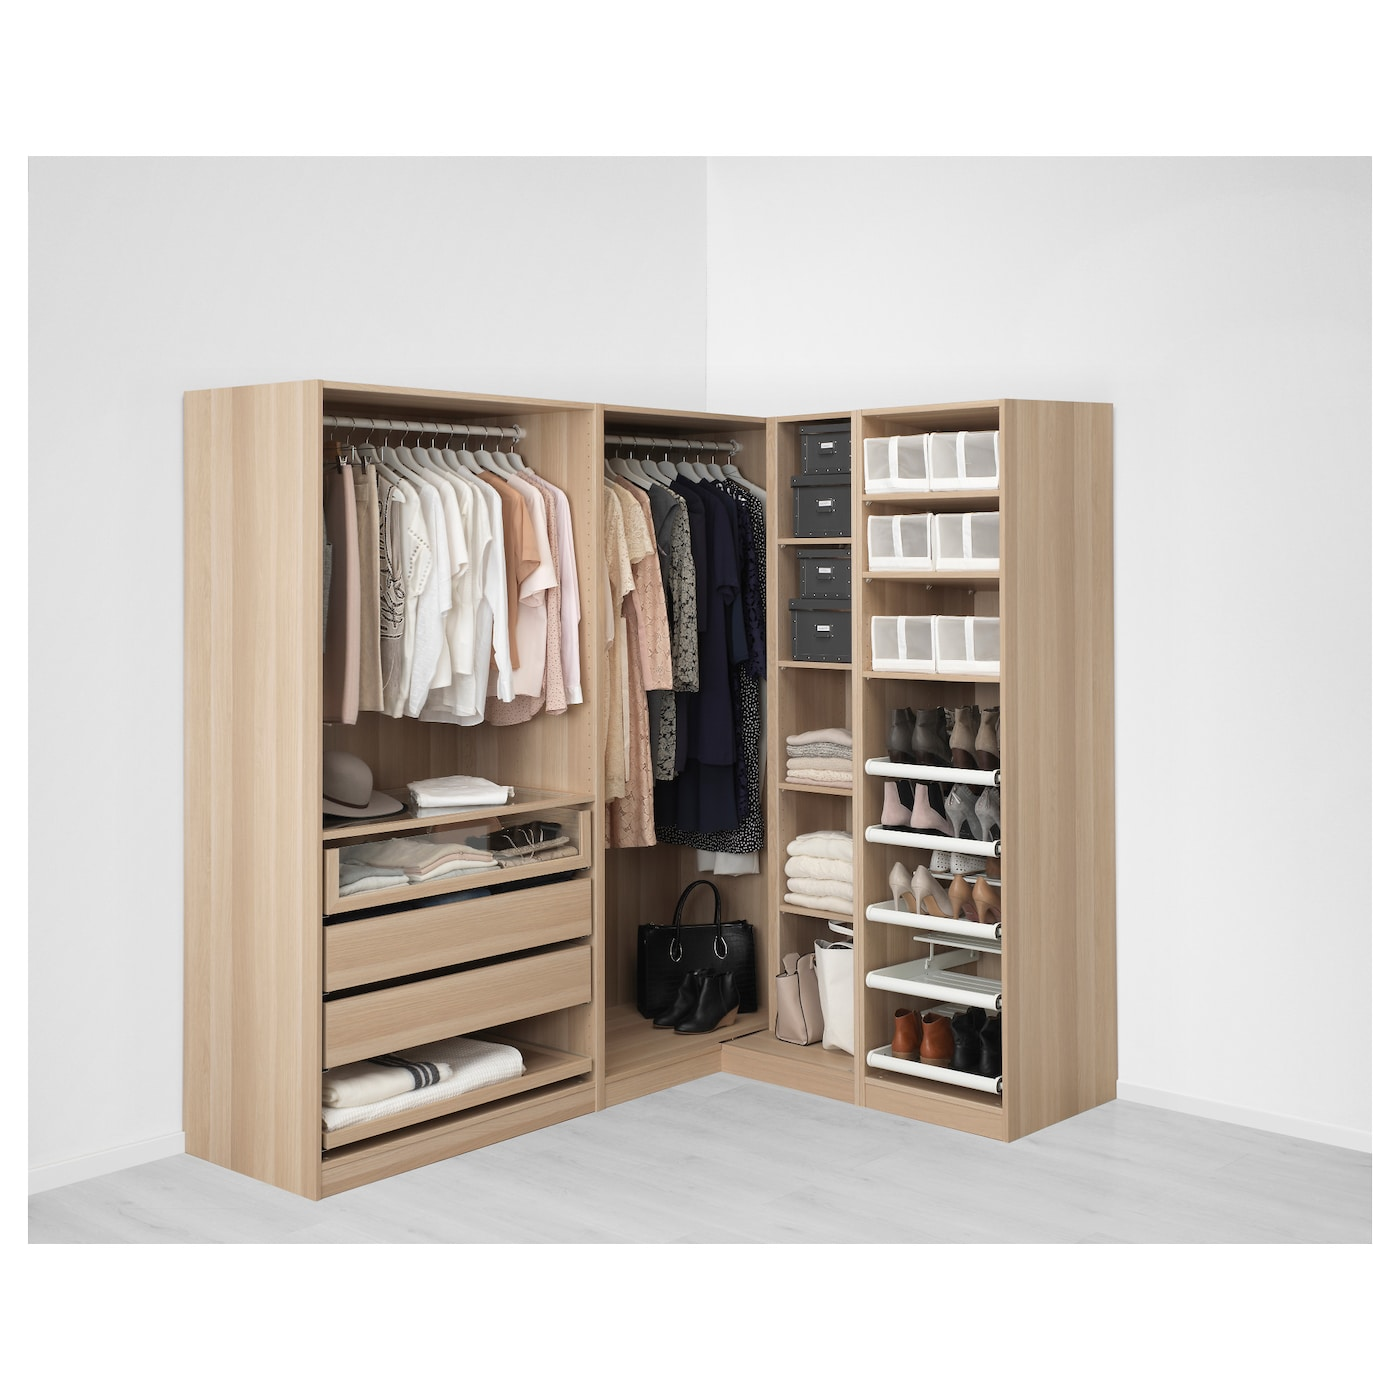 pax corner wardrobe white stained oak effect nexus vikedal. Black Bedroom Furniture Sets. Home Design Ideas